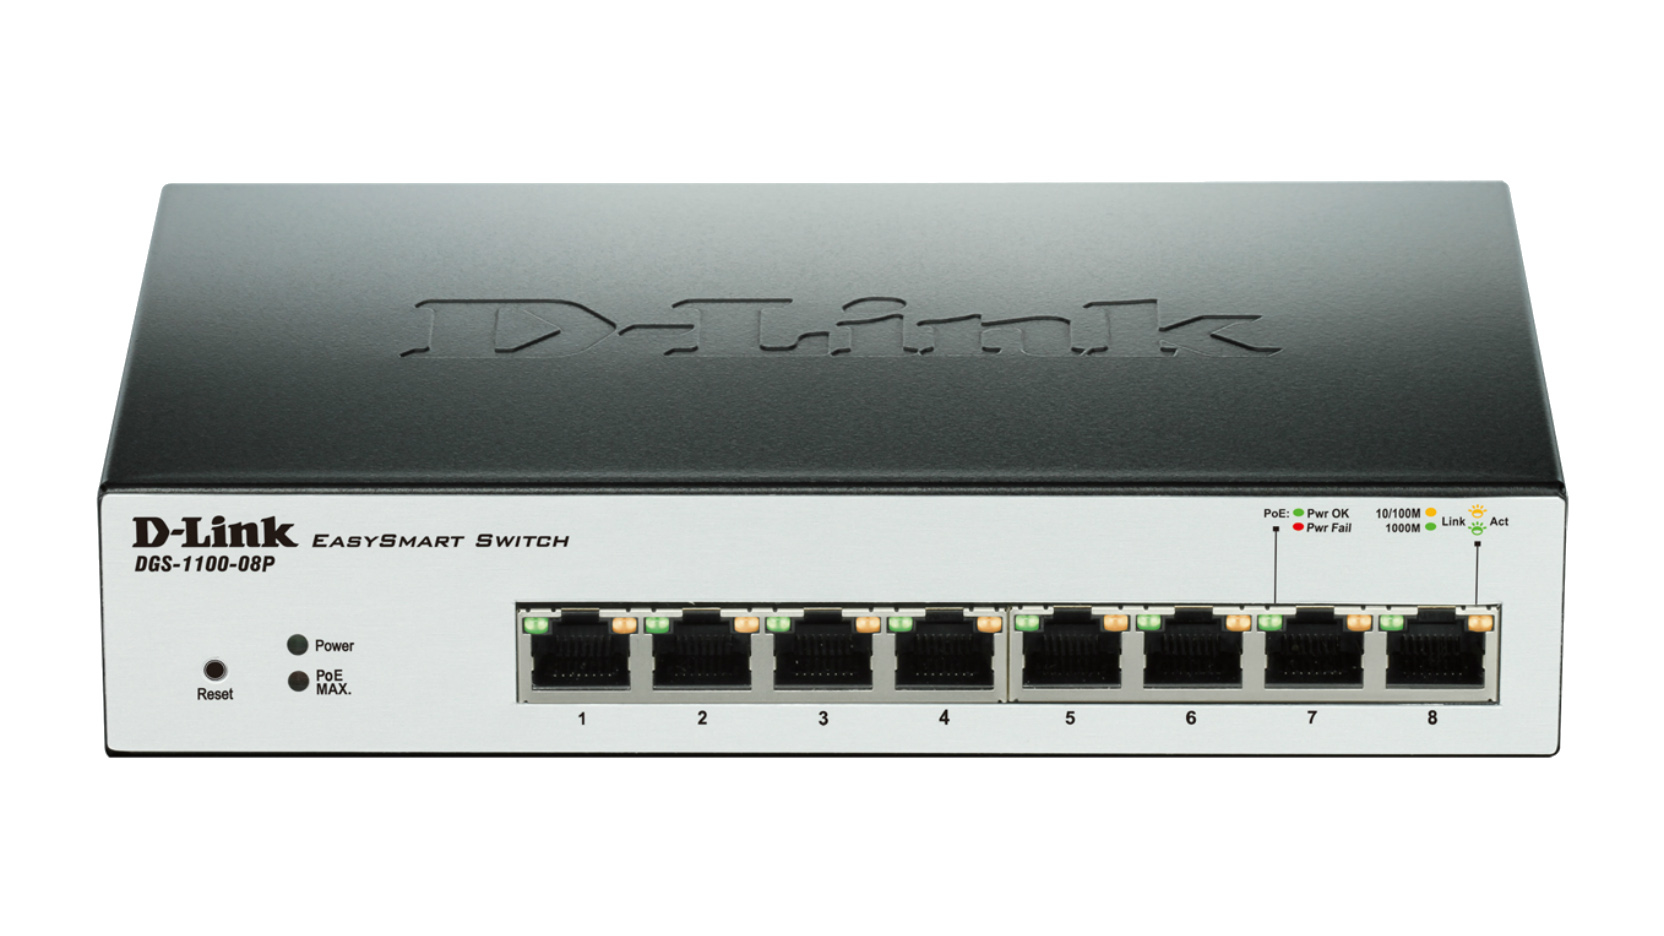 Buy Now D Link Dgs 1100 08p L2 Gigabit Ethernet Power Over Is A Technology That Allows Devices Such Uk Poe Black Network Switch